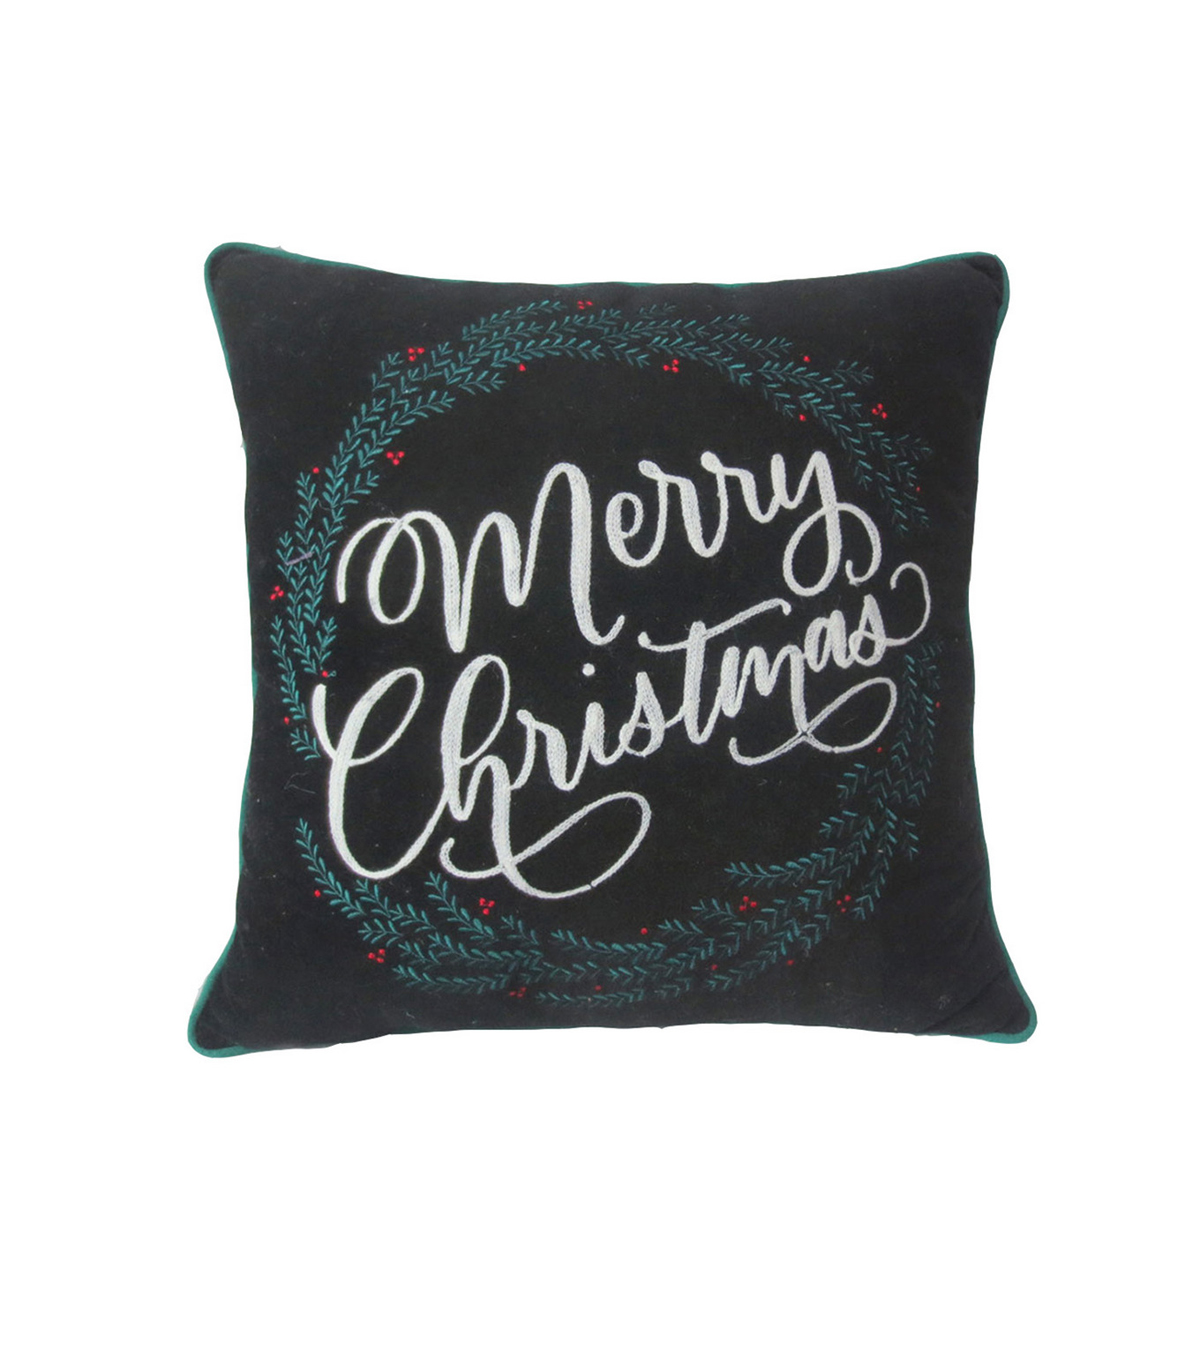 Maker\u0027s Holiday Christmas Pillow-Merry Christmas on Black